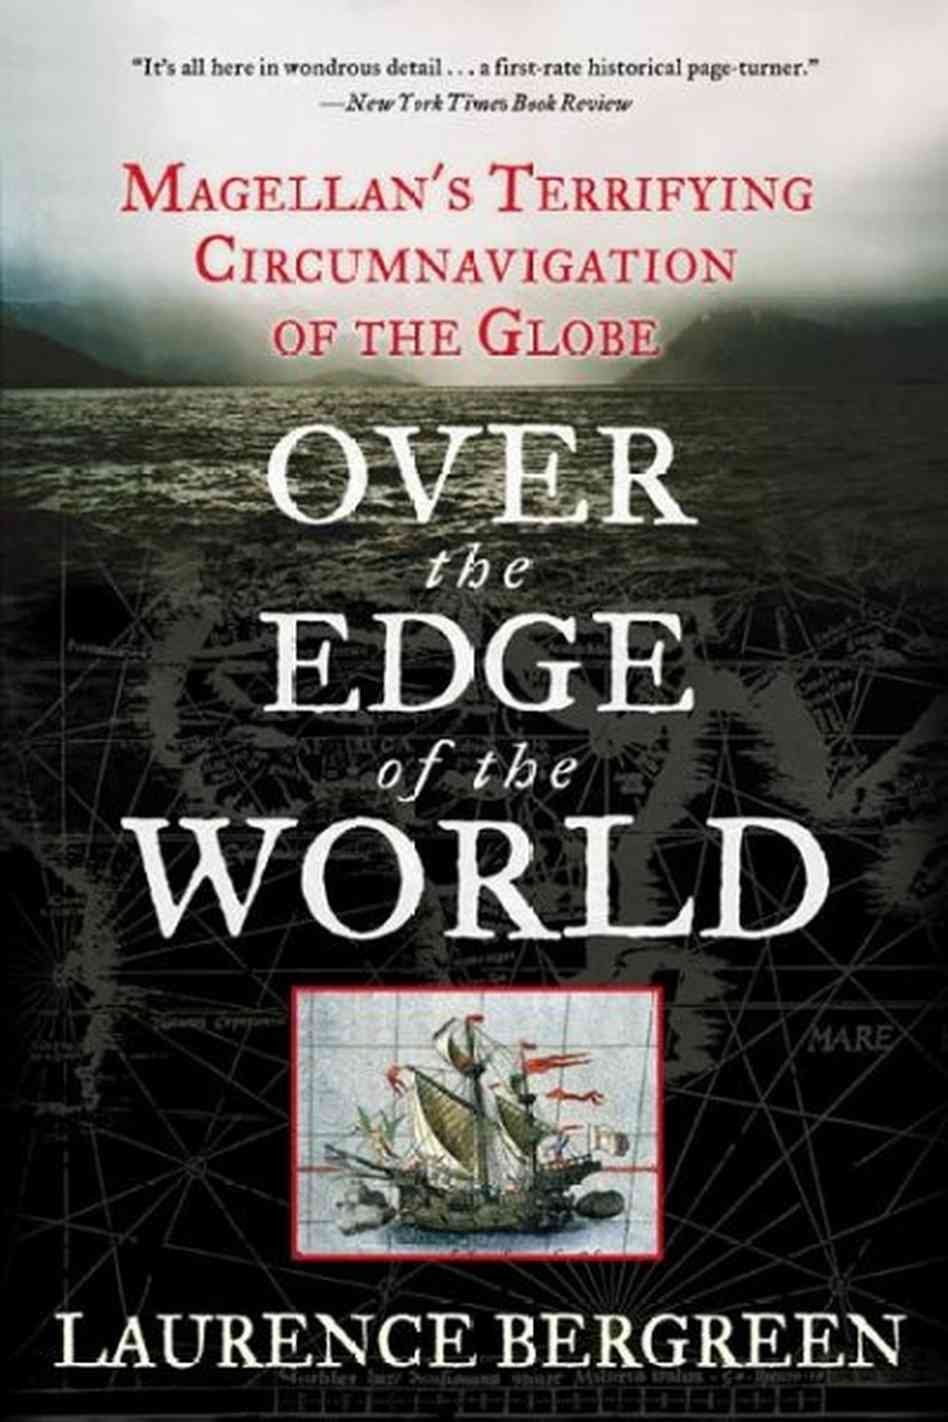 Over The Edge Of The World: Magellan's Terrifying Circumnavigation Of The Globe by Laurence Bergreen